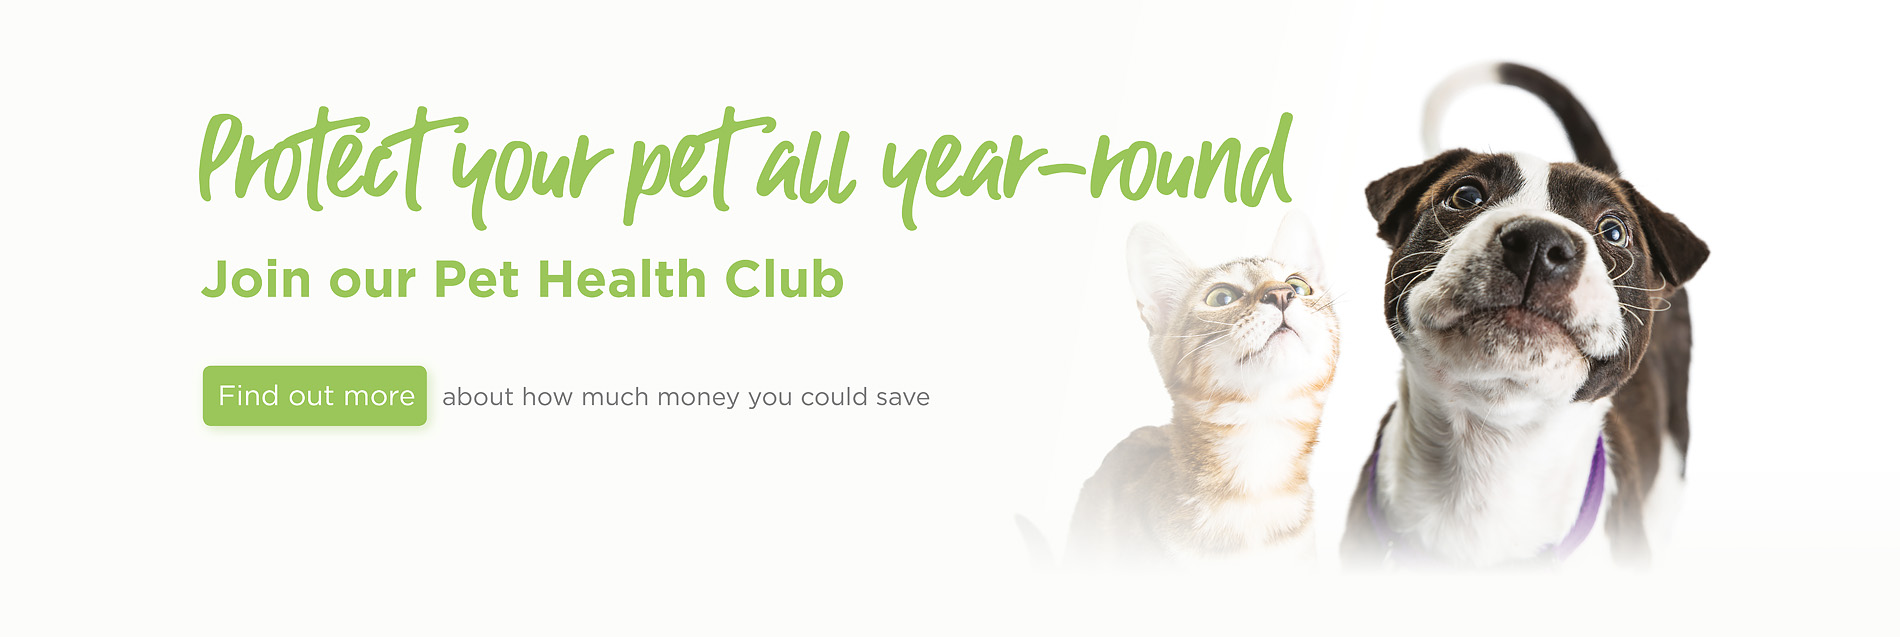 Blythwood Vets in Hatch End, Bushey, Northwood, and Stanmore